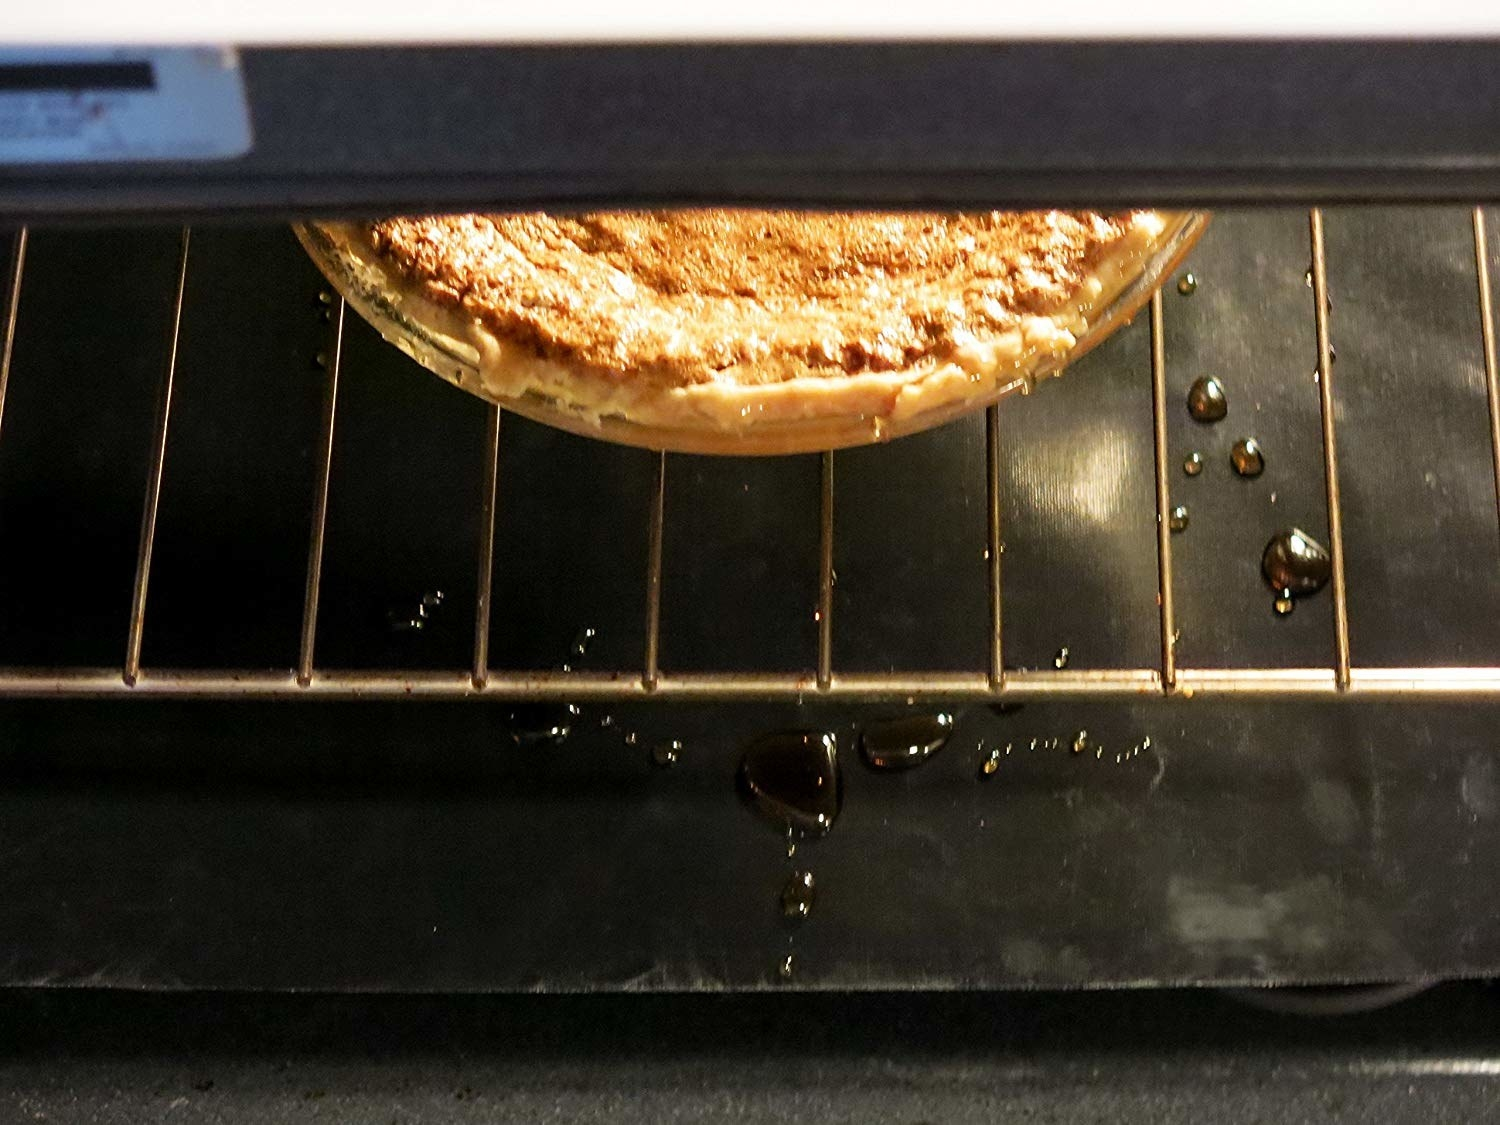 the black oven liner barely detectable in the bottom of the oven catching grease from a pizza